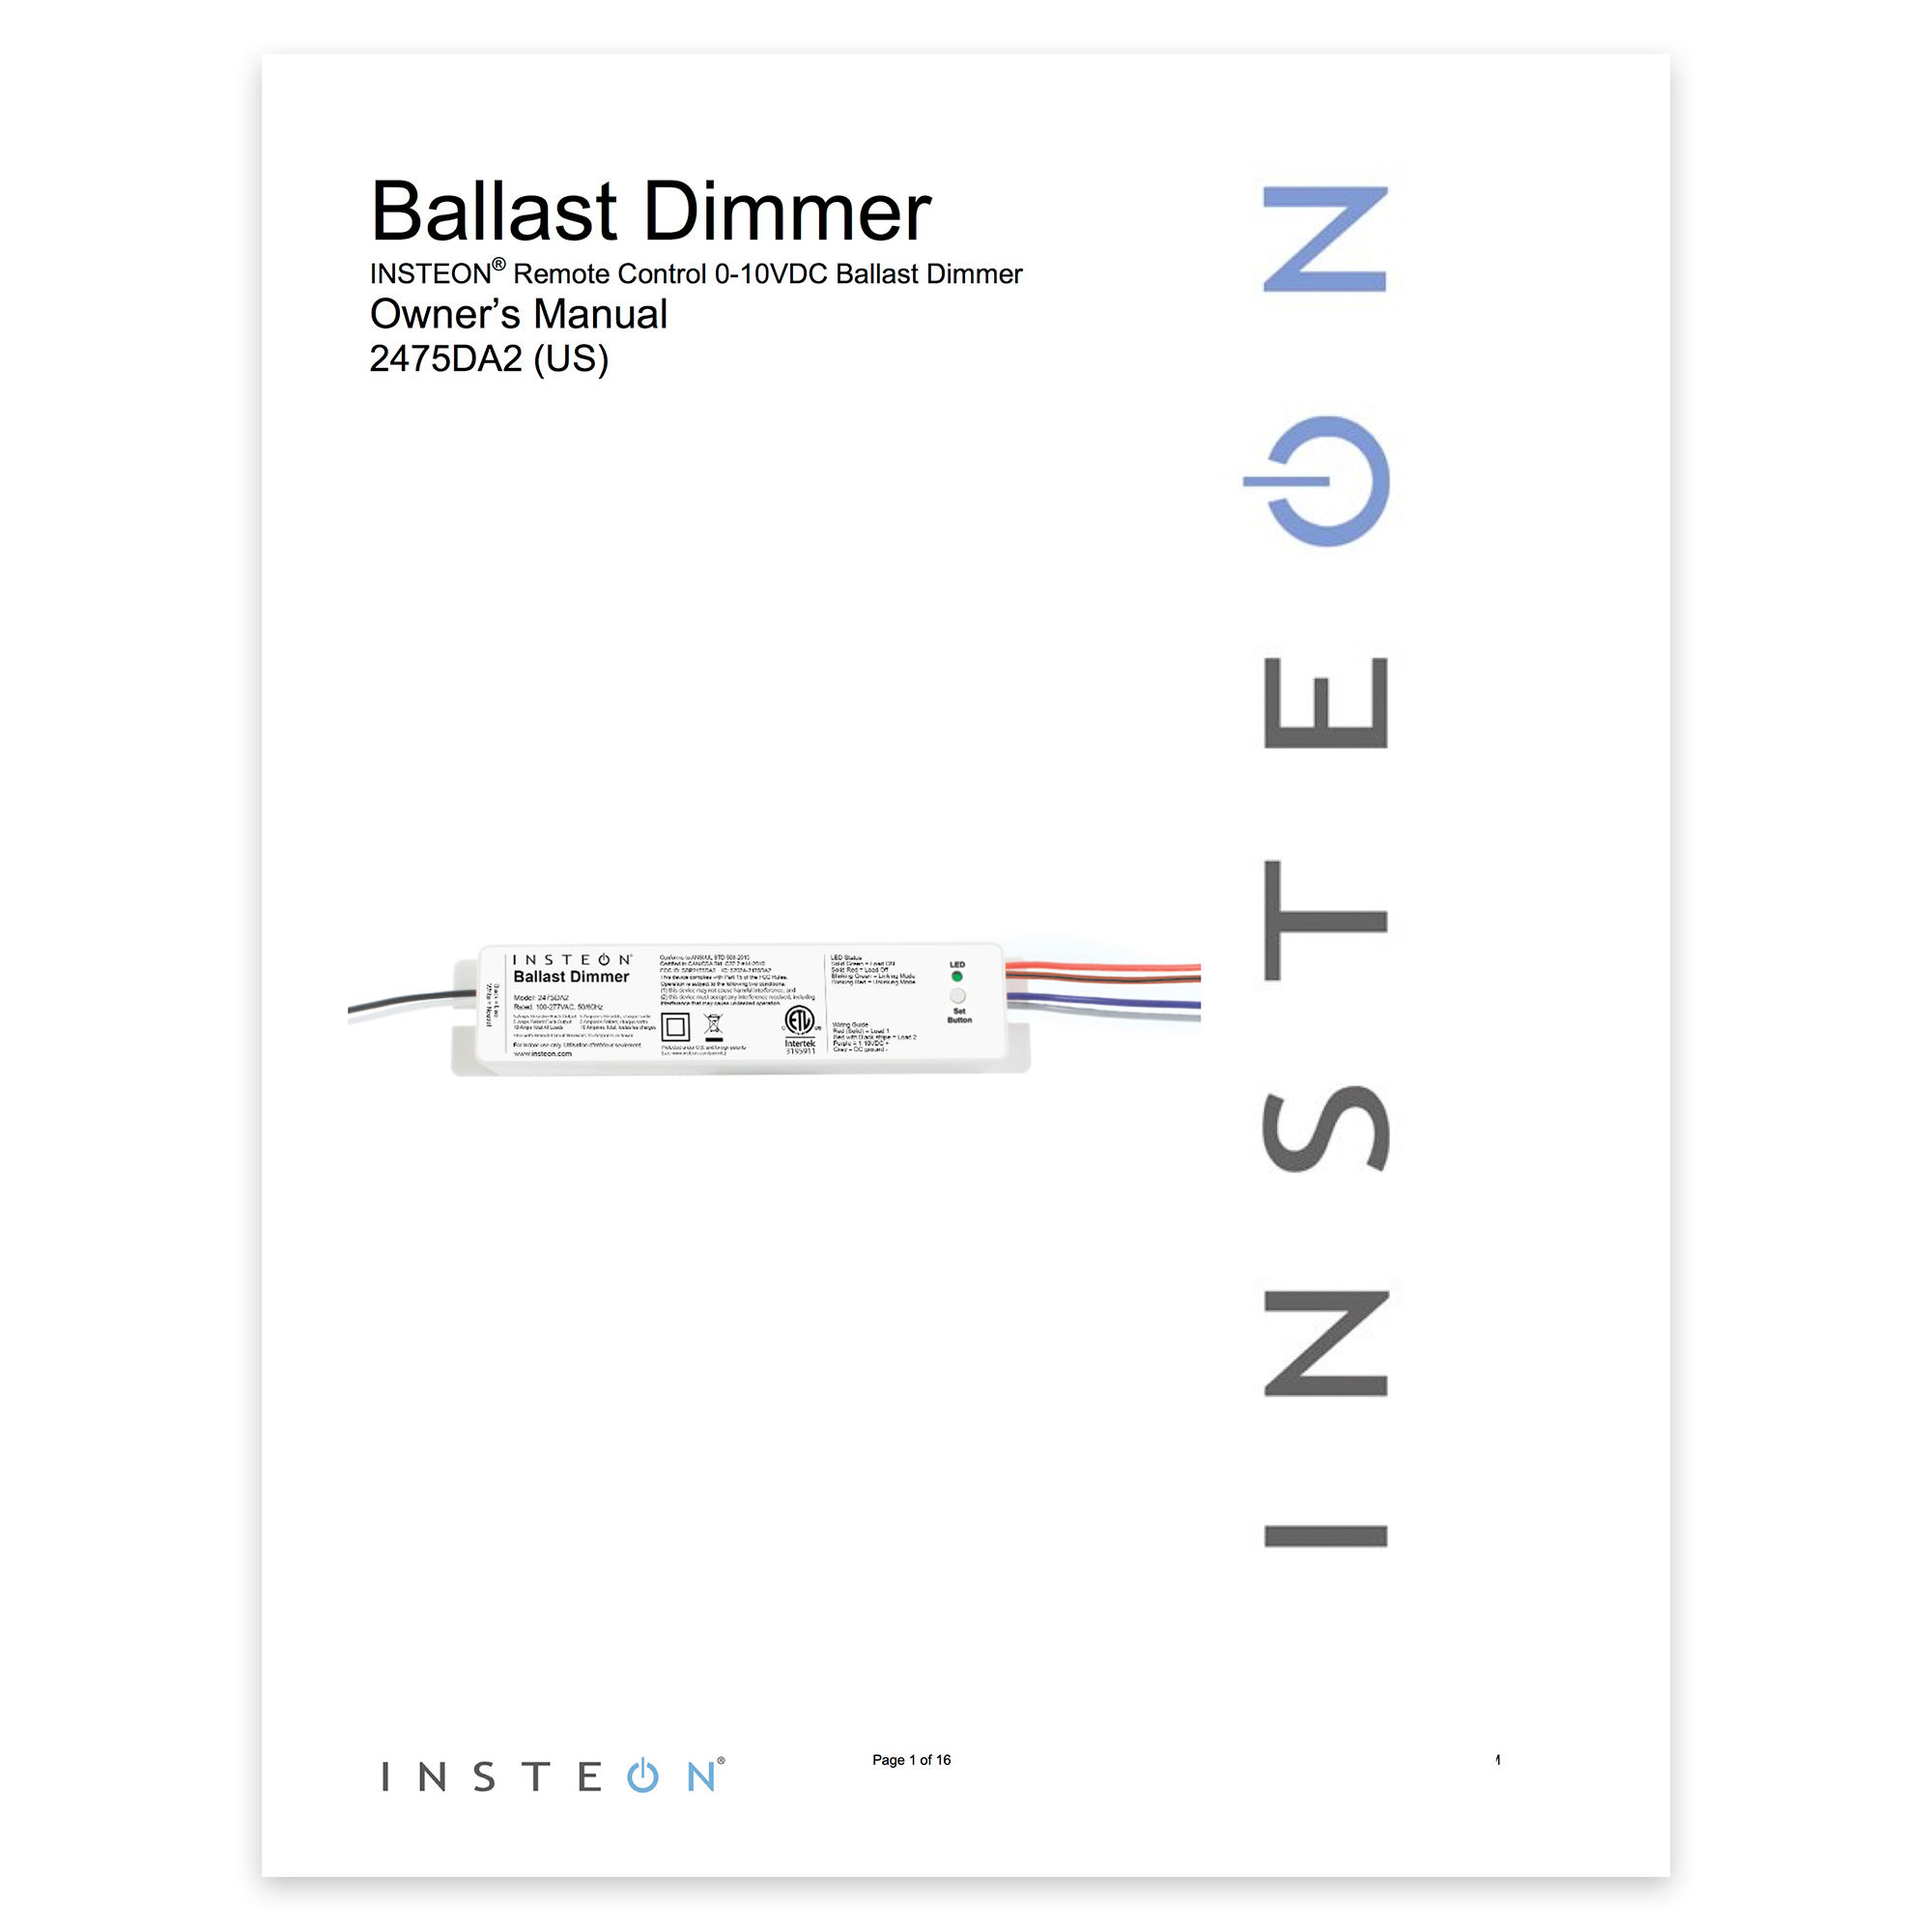 Manuals 2475da2?format=300w 0 10v ballast dimmer insteon step dimming ballast wiring diagram at fashall.co